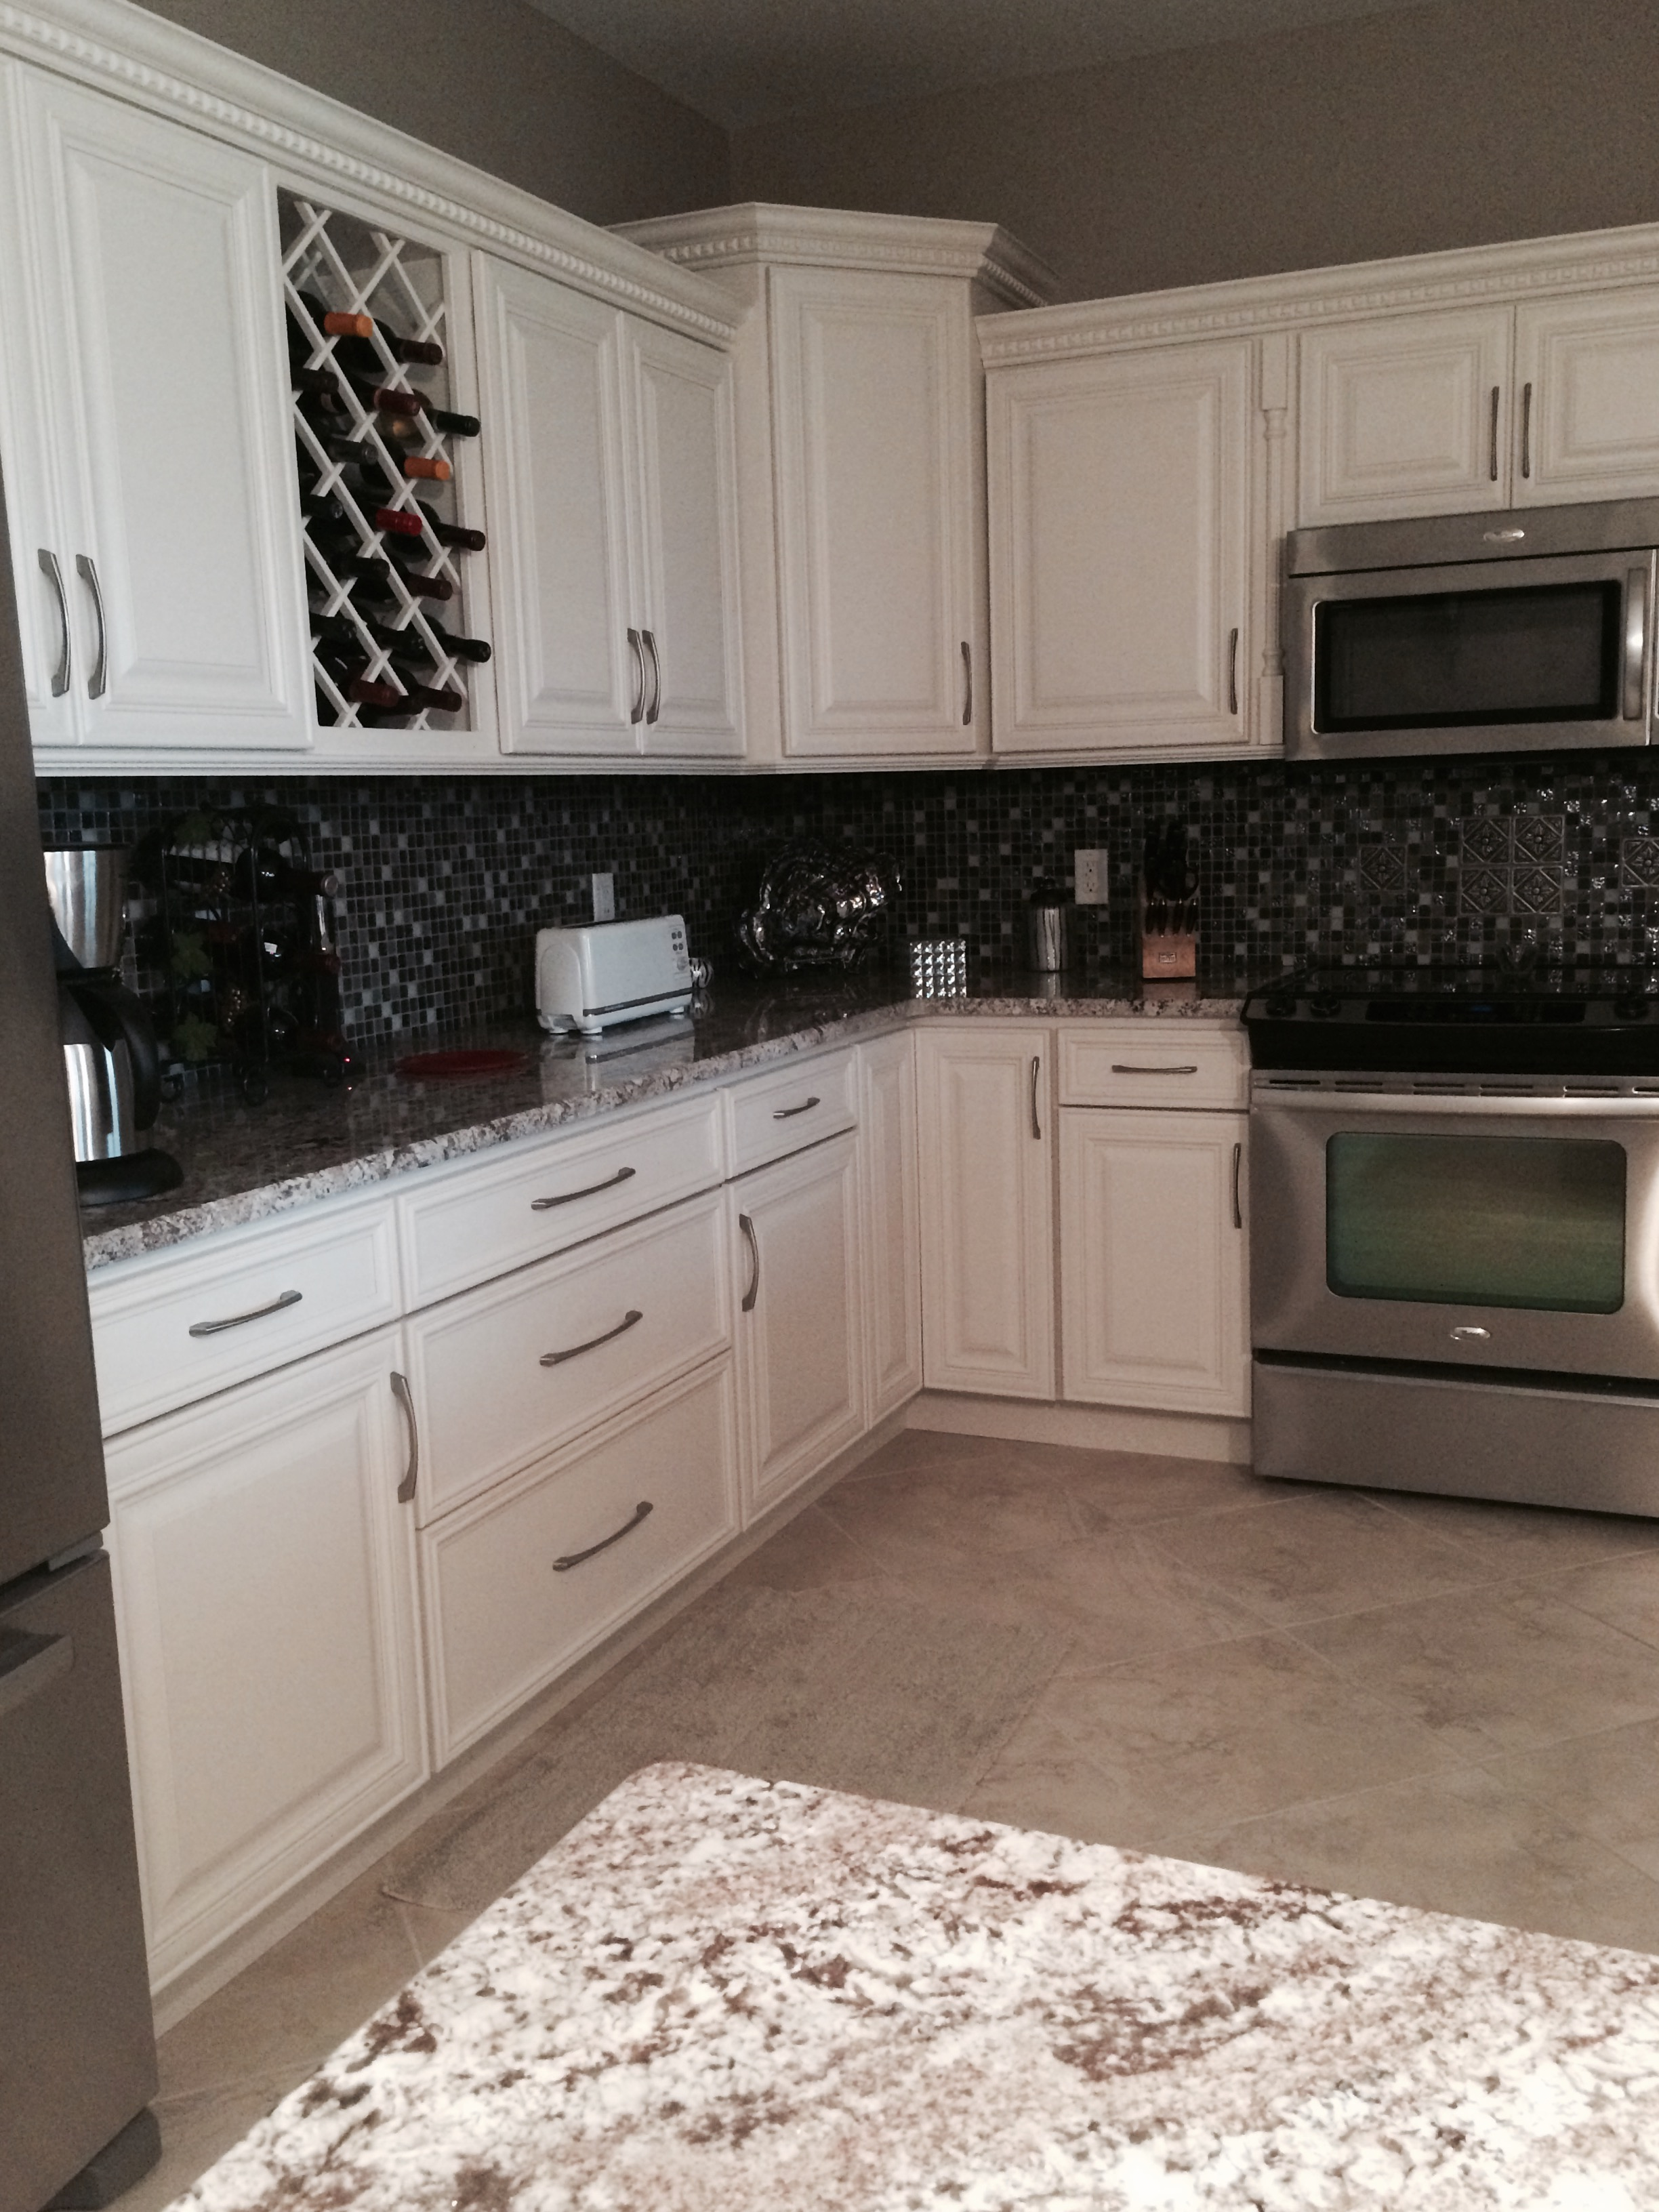 Tristate Kitchens  The Cabinet Professionals